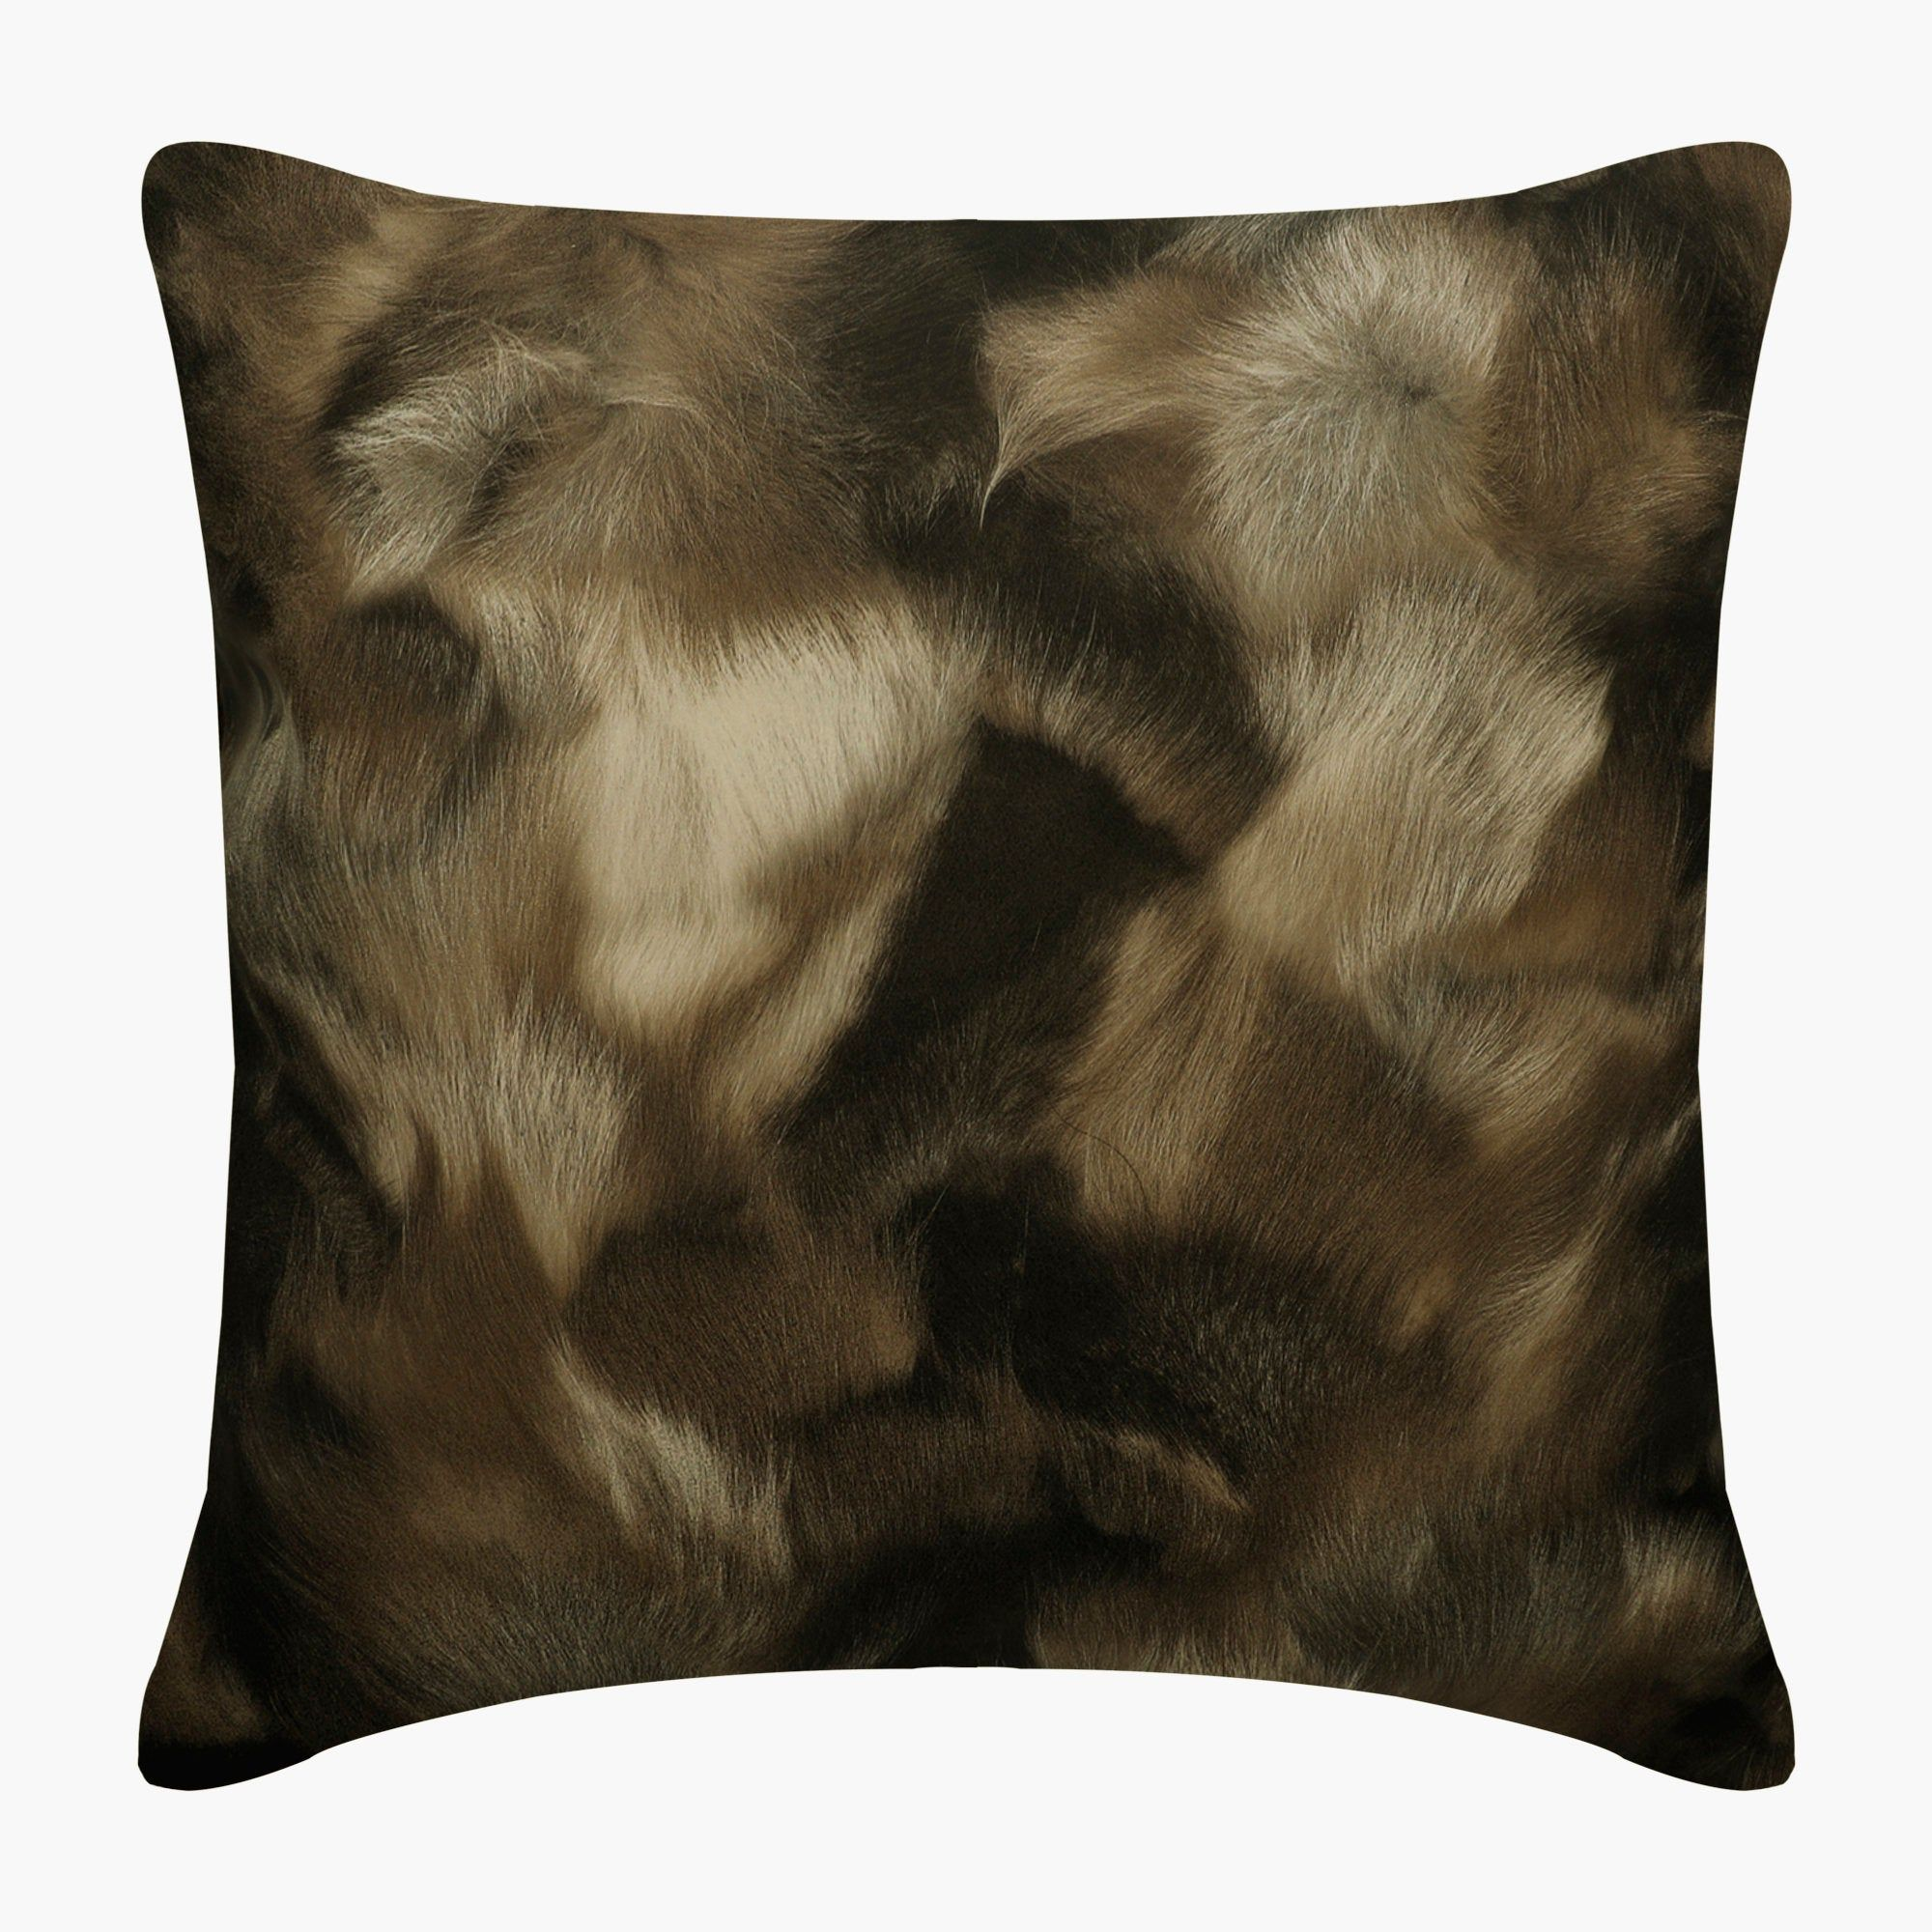 Brown Pillow Cover with Gold Texture